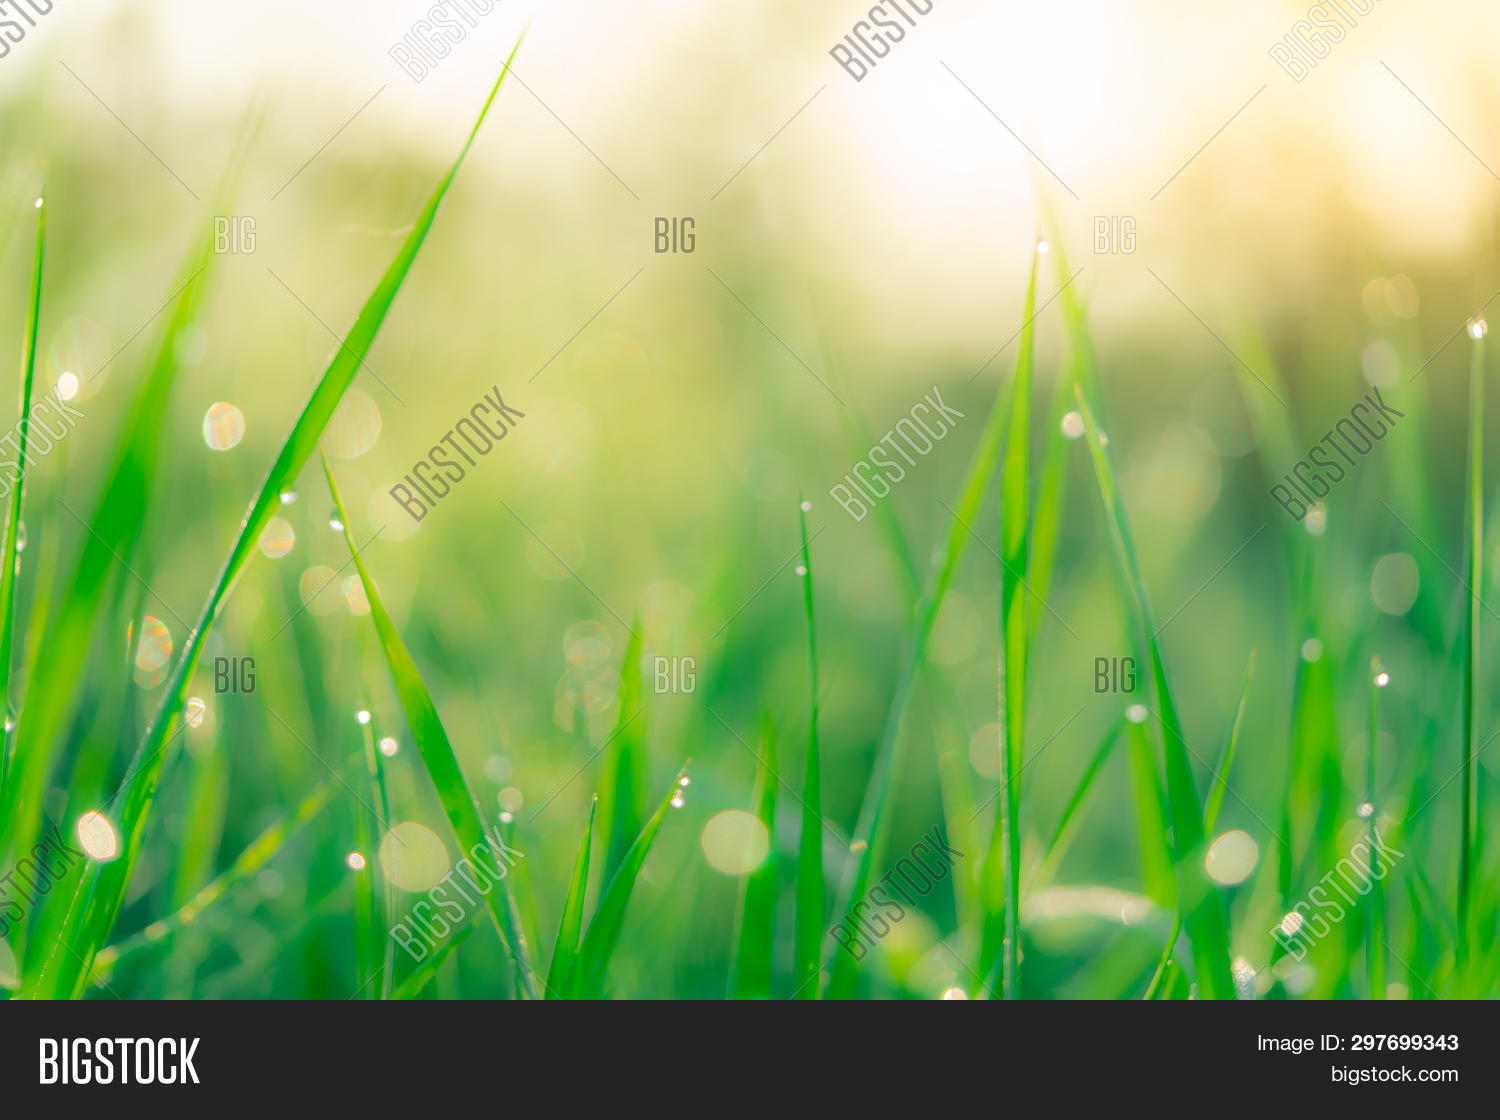 Blurred Fresh Green Grass Field In The Early Morning With Morning Dew. Water Drop On Tip Of Grass Le